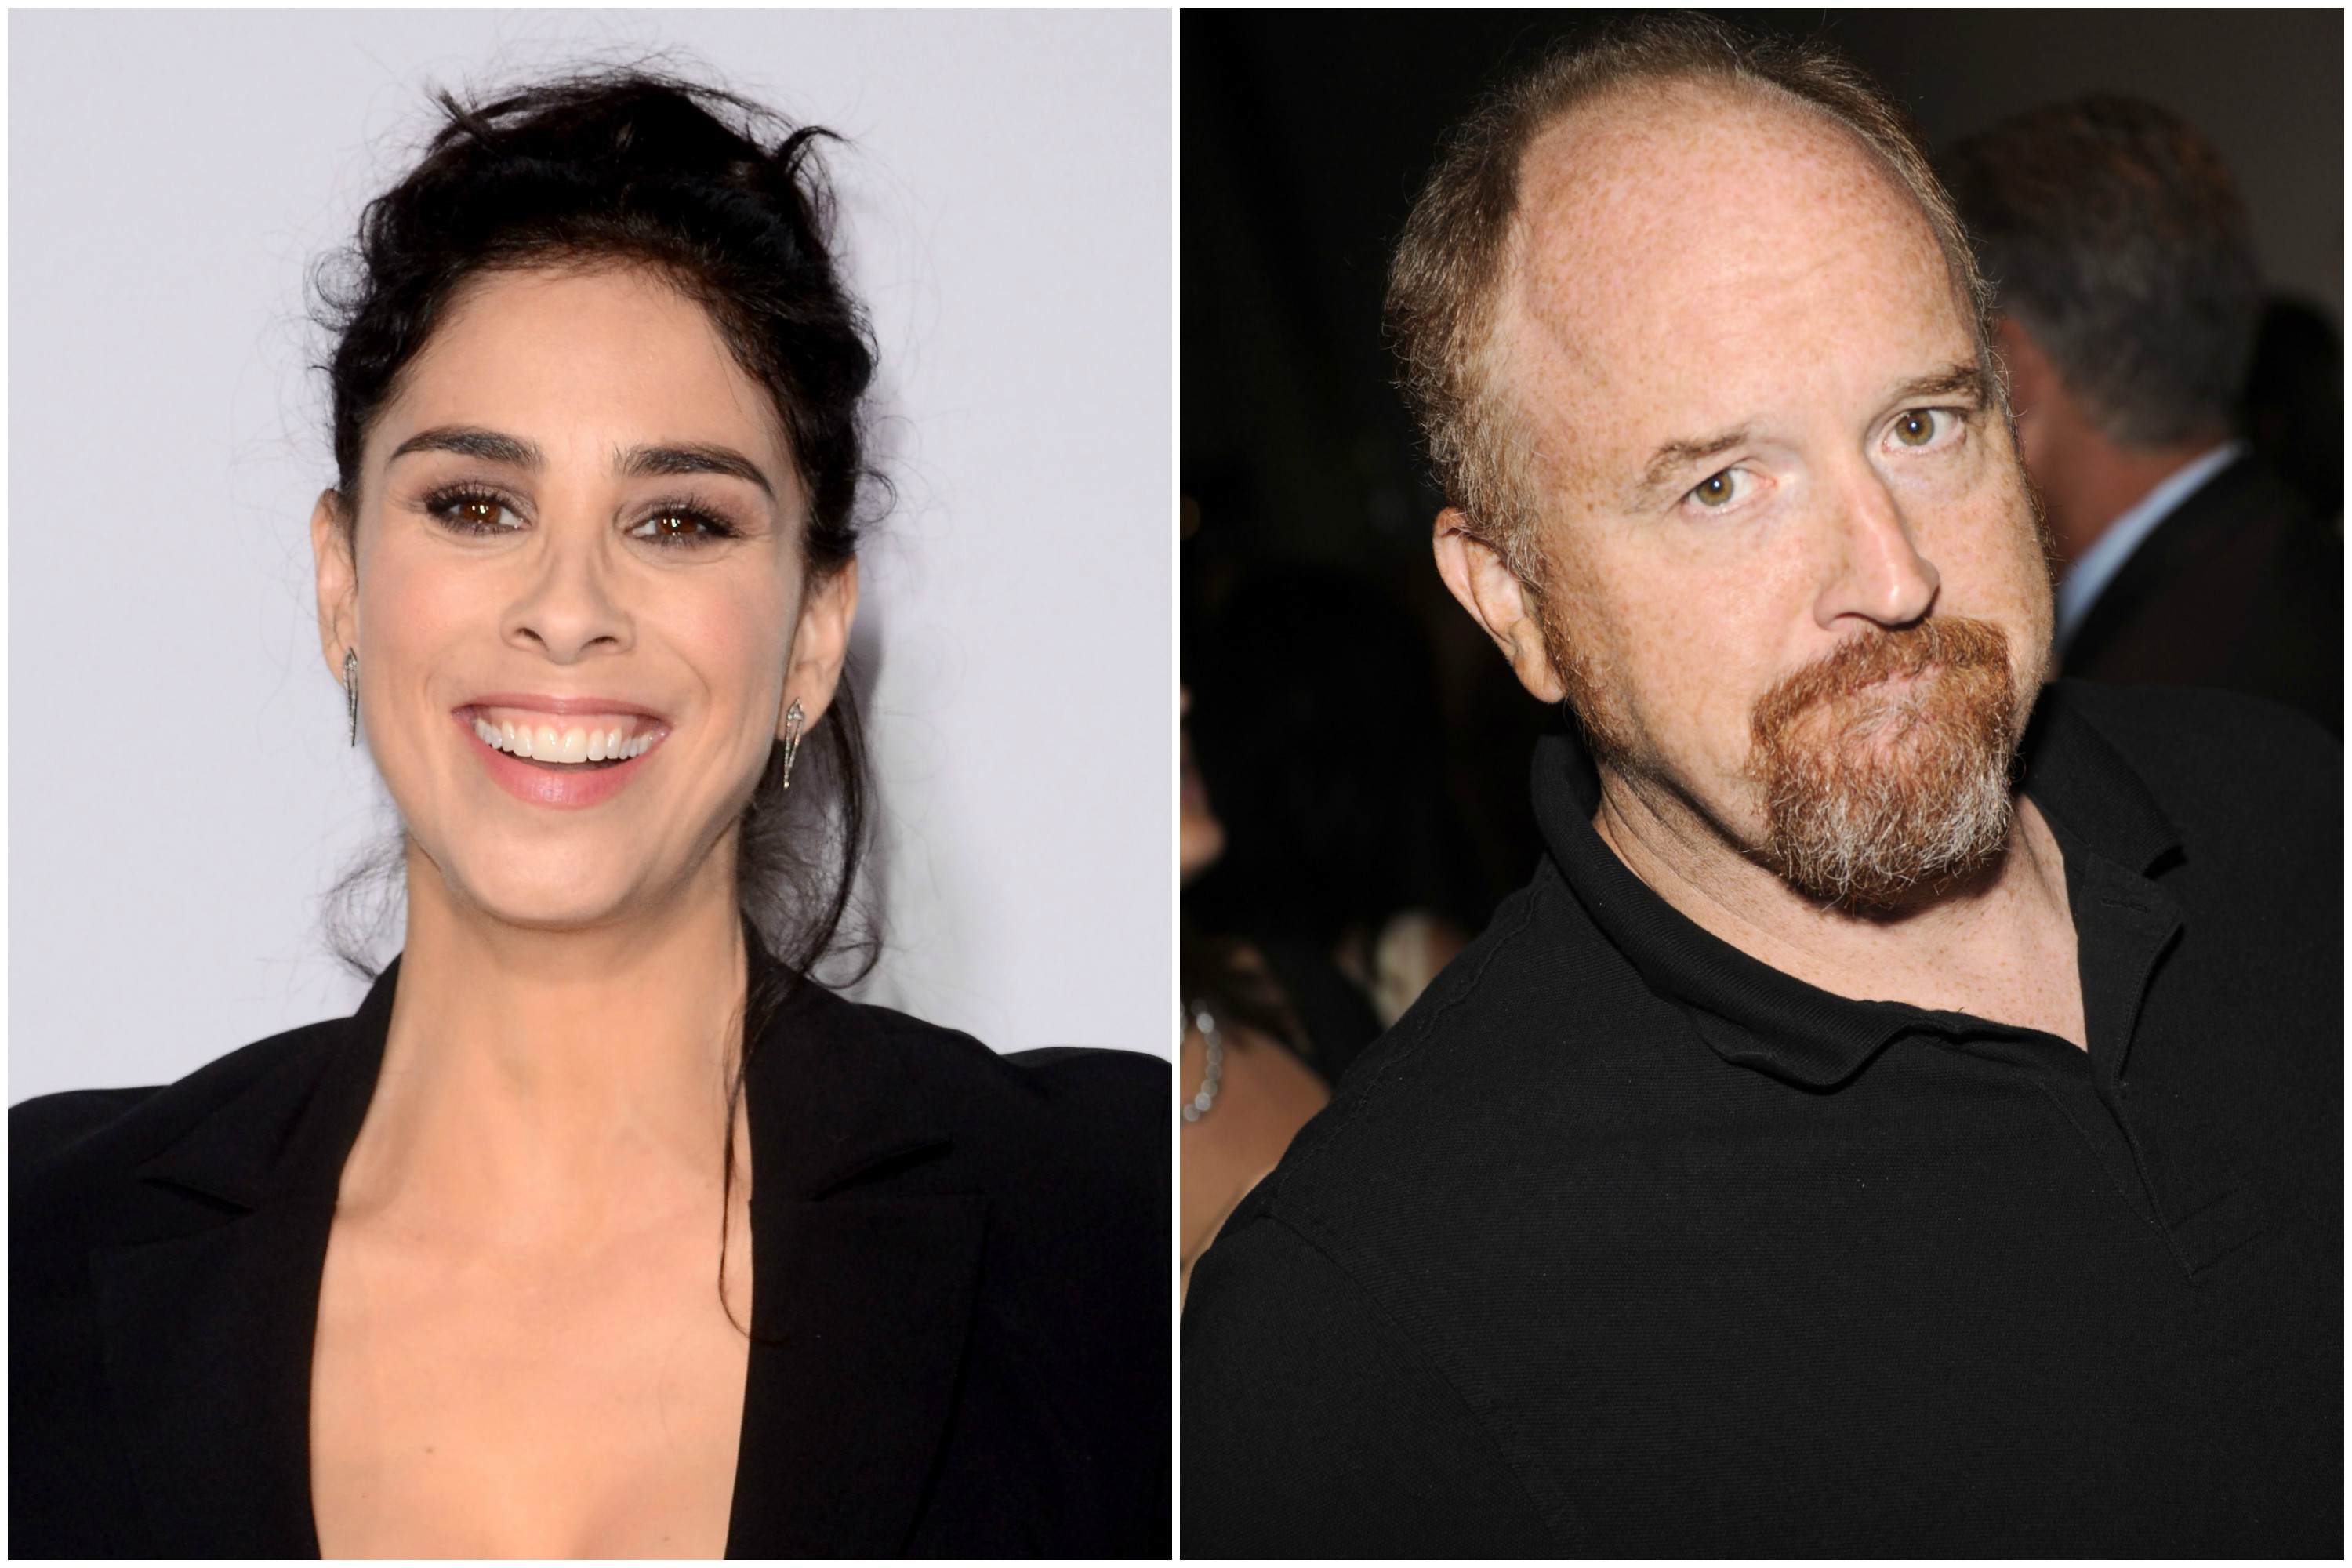 Sarah Silverman allowed Louis CK to masturbate in front of her